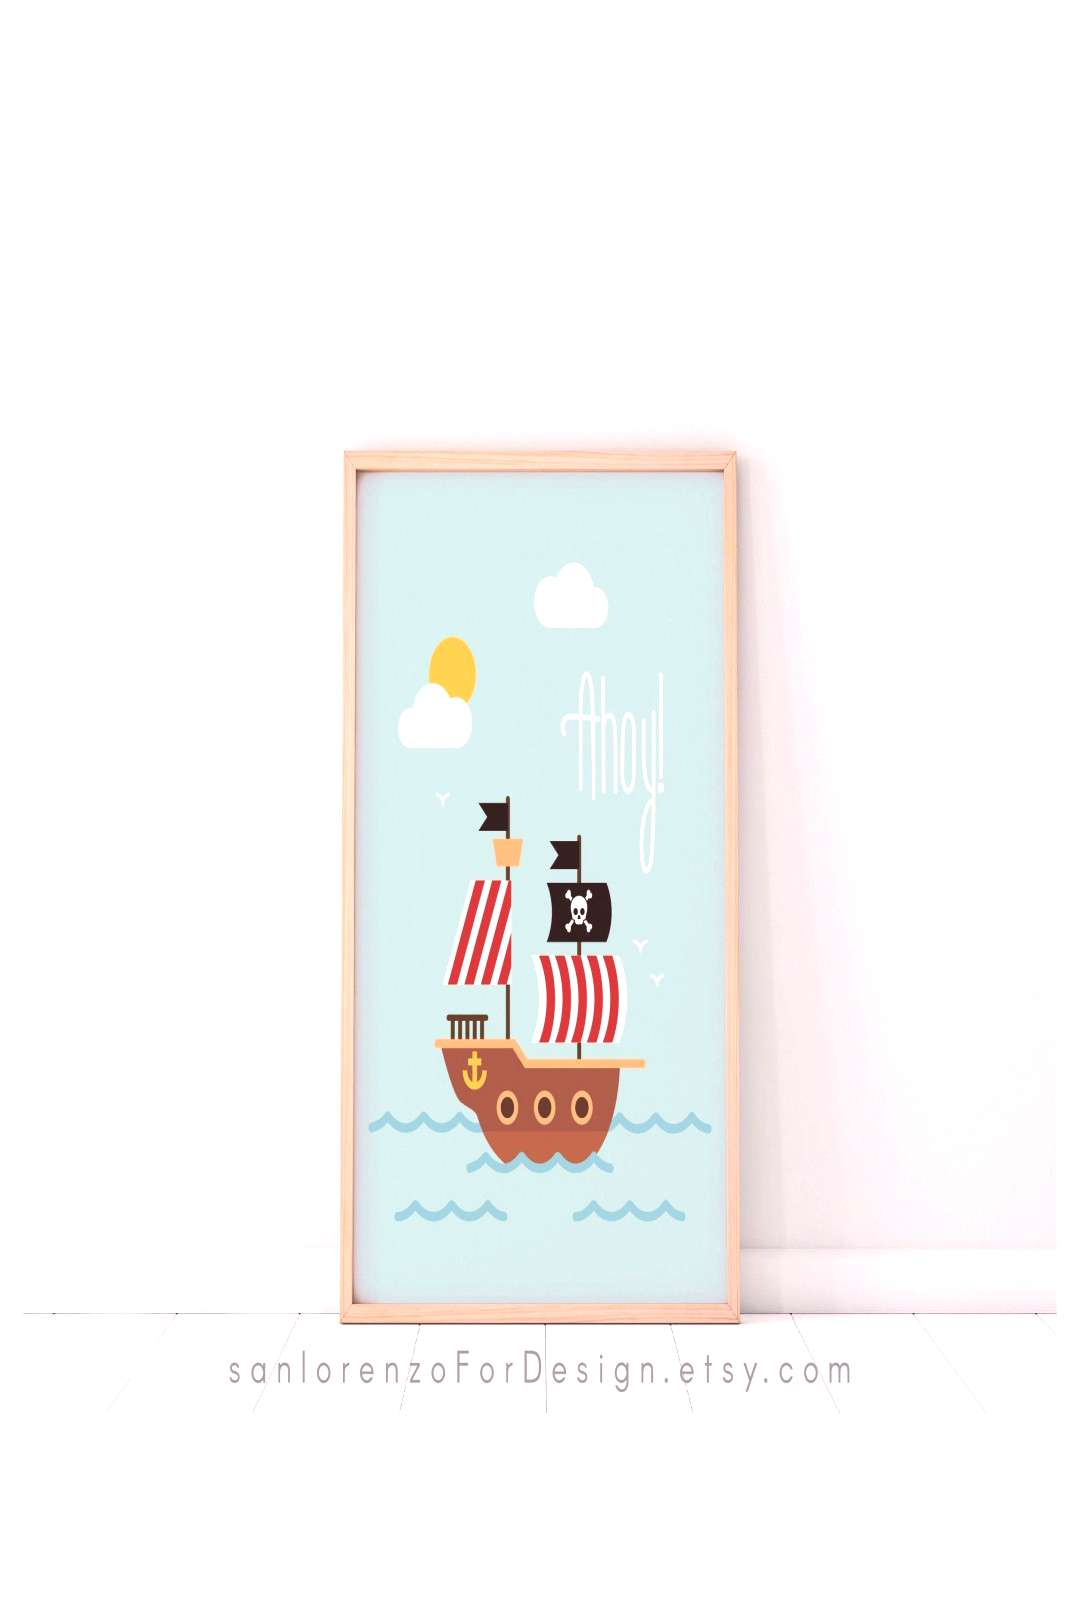 Ahoy! Pirate Ship for Kids Room, Nautical Nursery Room, Ocean Sea and Pirates Wall Art Decor for In